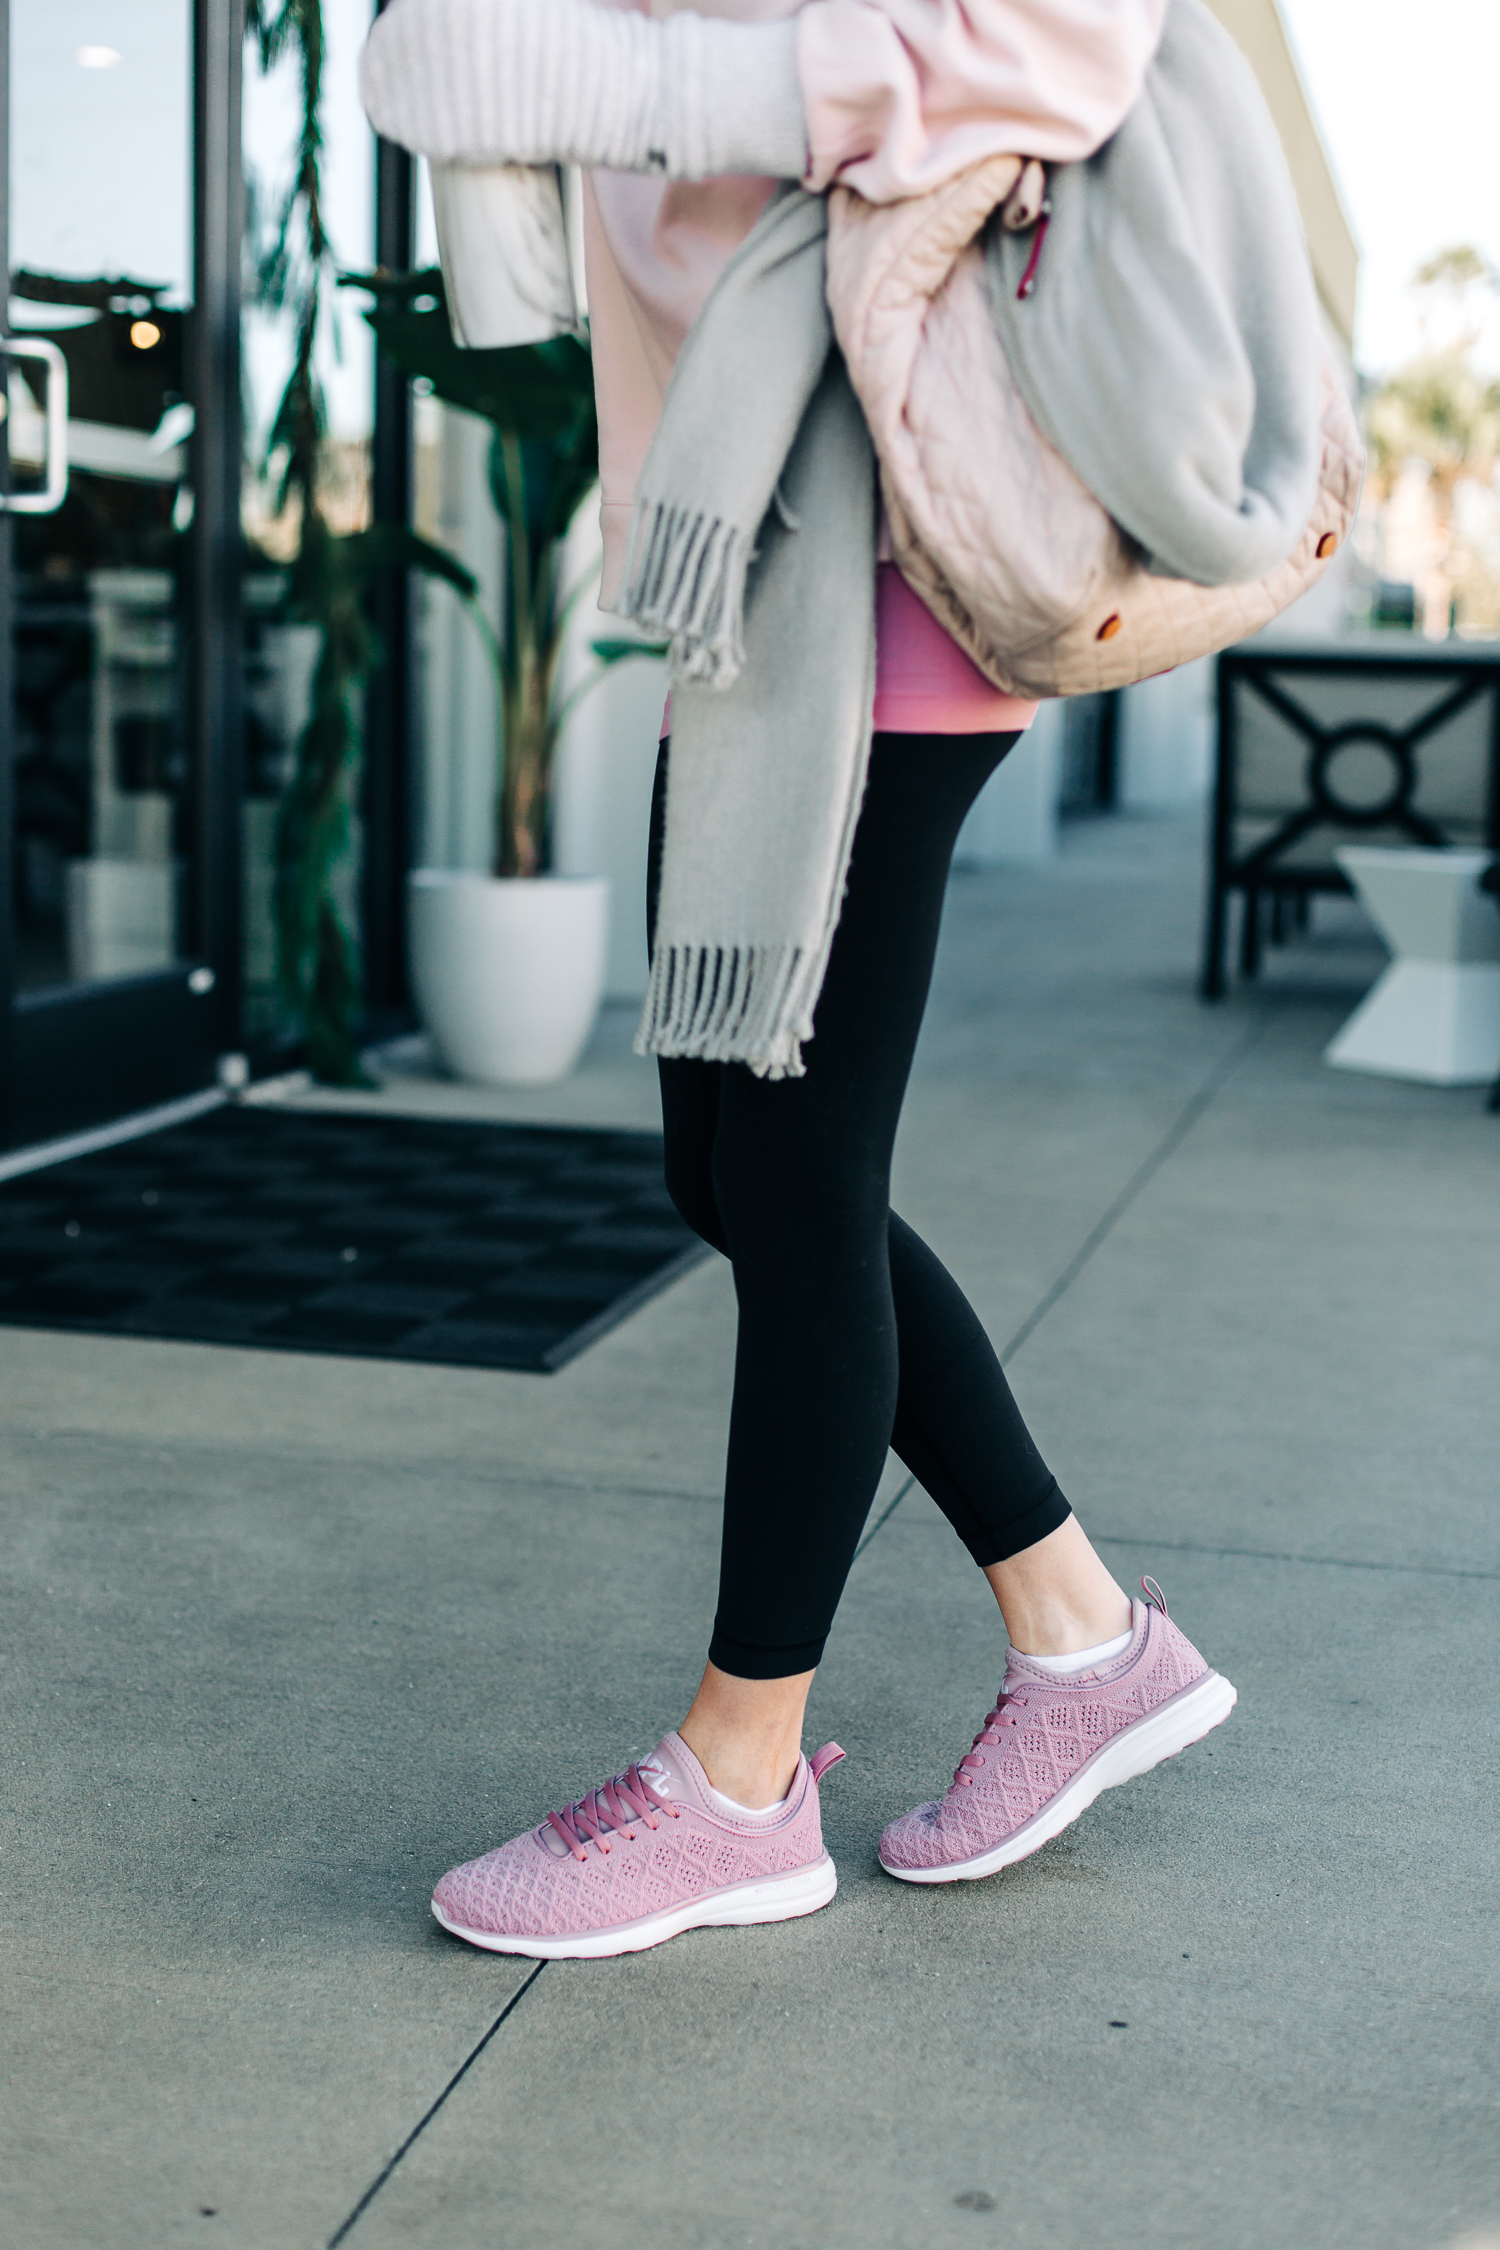 fitness lover gift ideas, lululemon